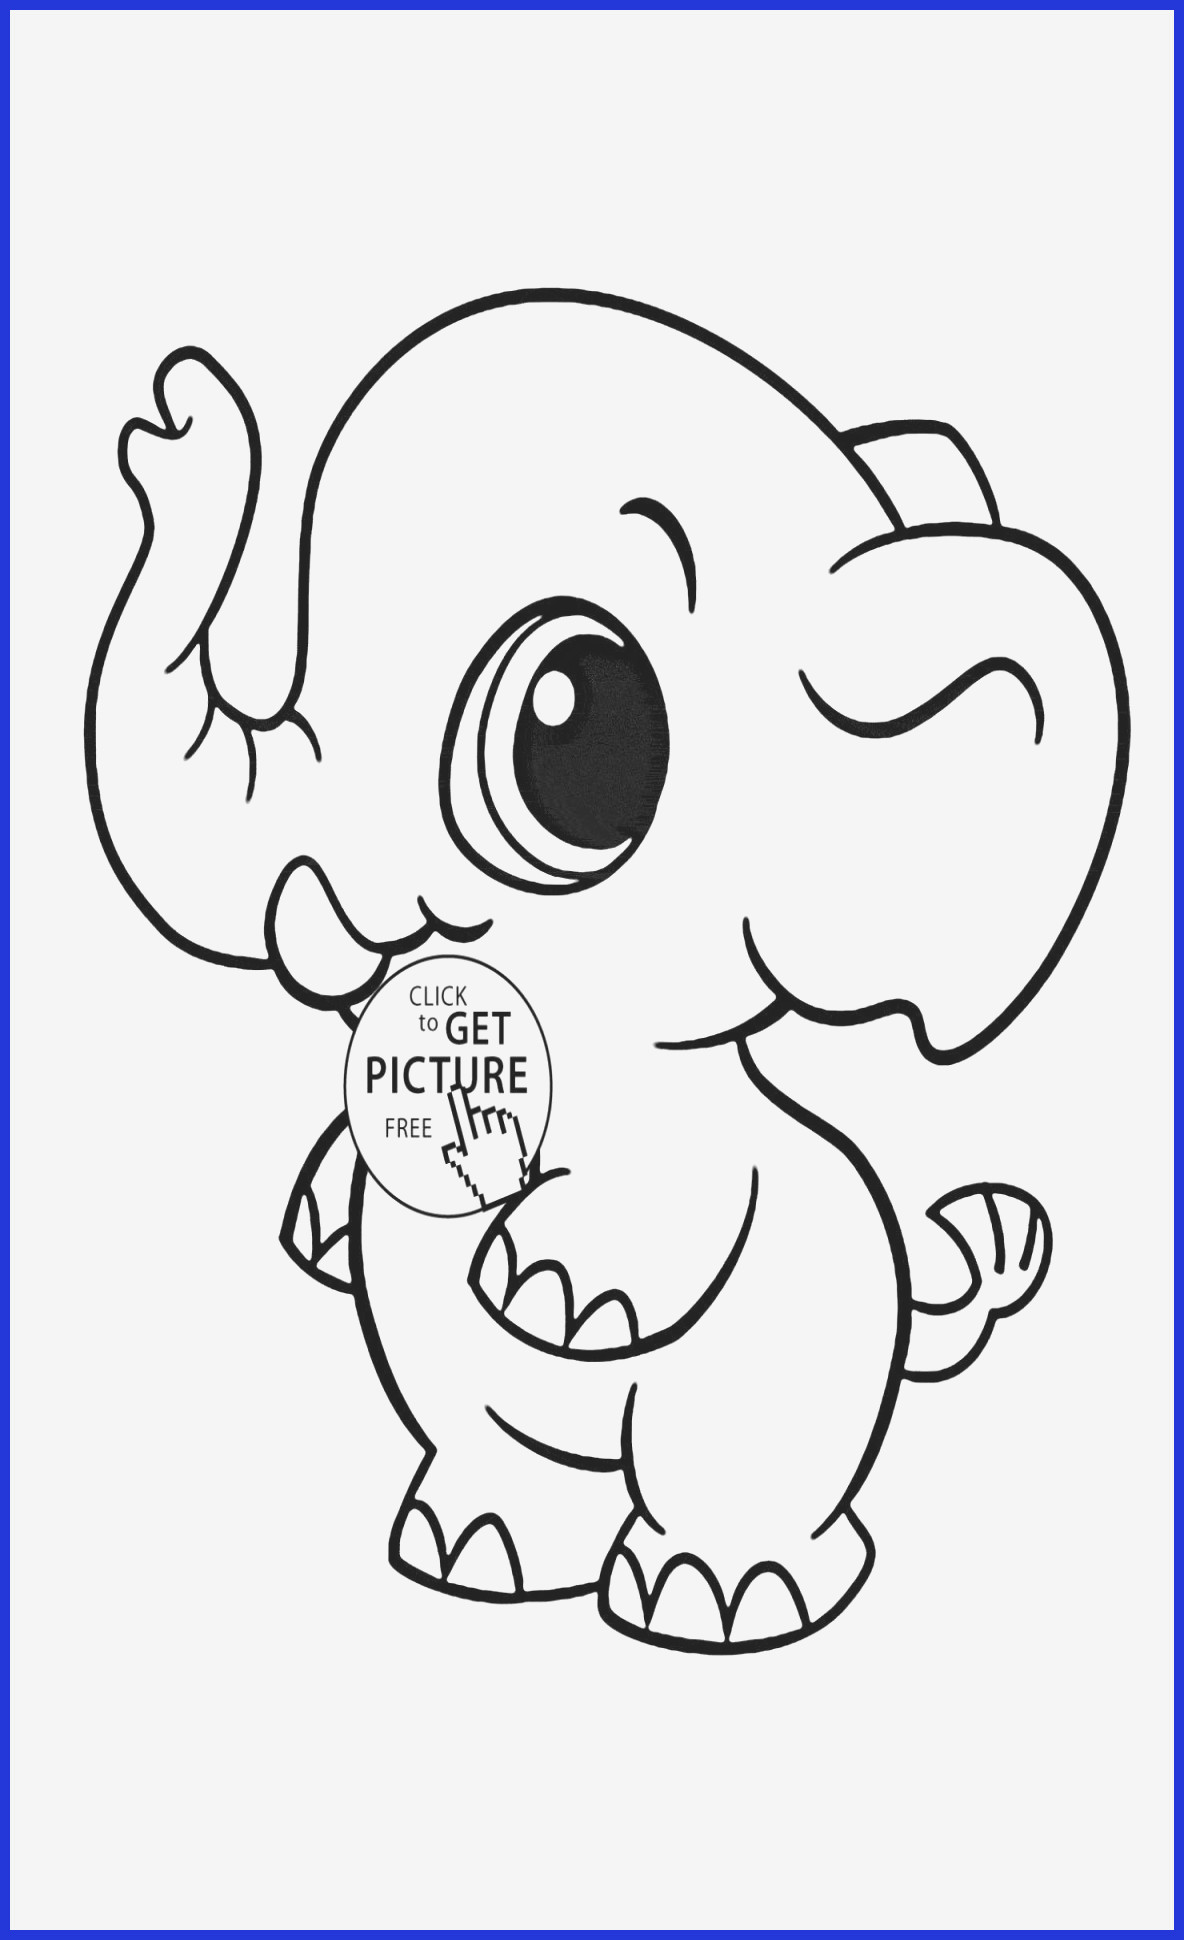 drawing printables 0d archives se telefonyfo free coloring pages for christmas inspirational printable od dog